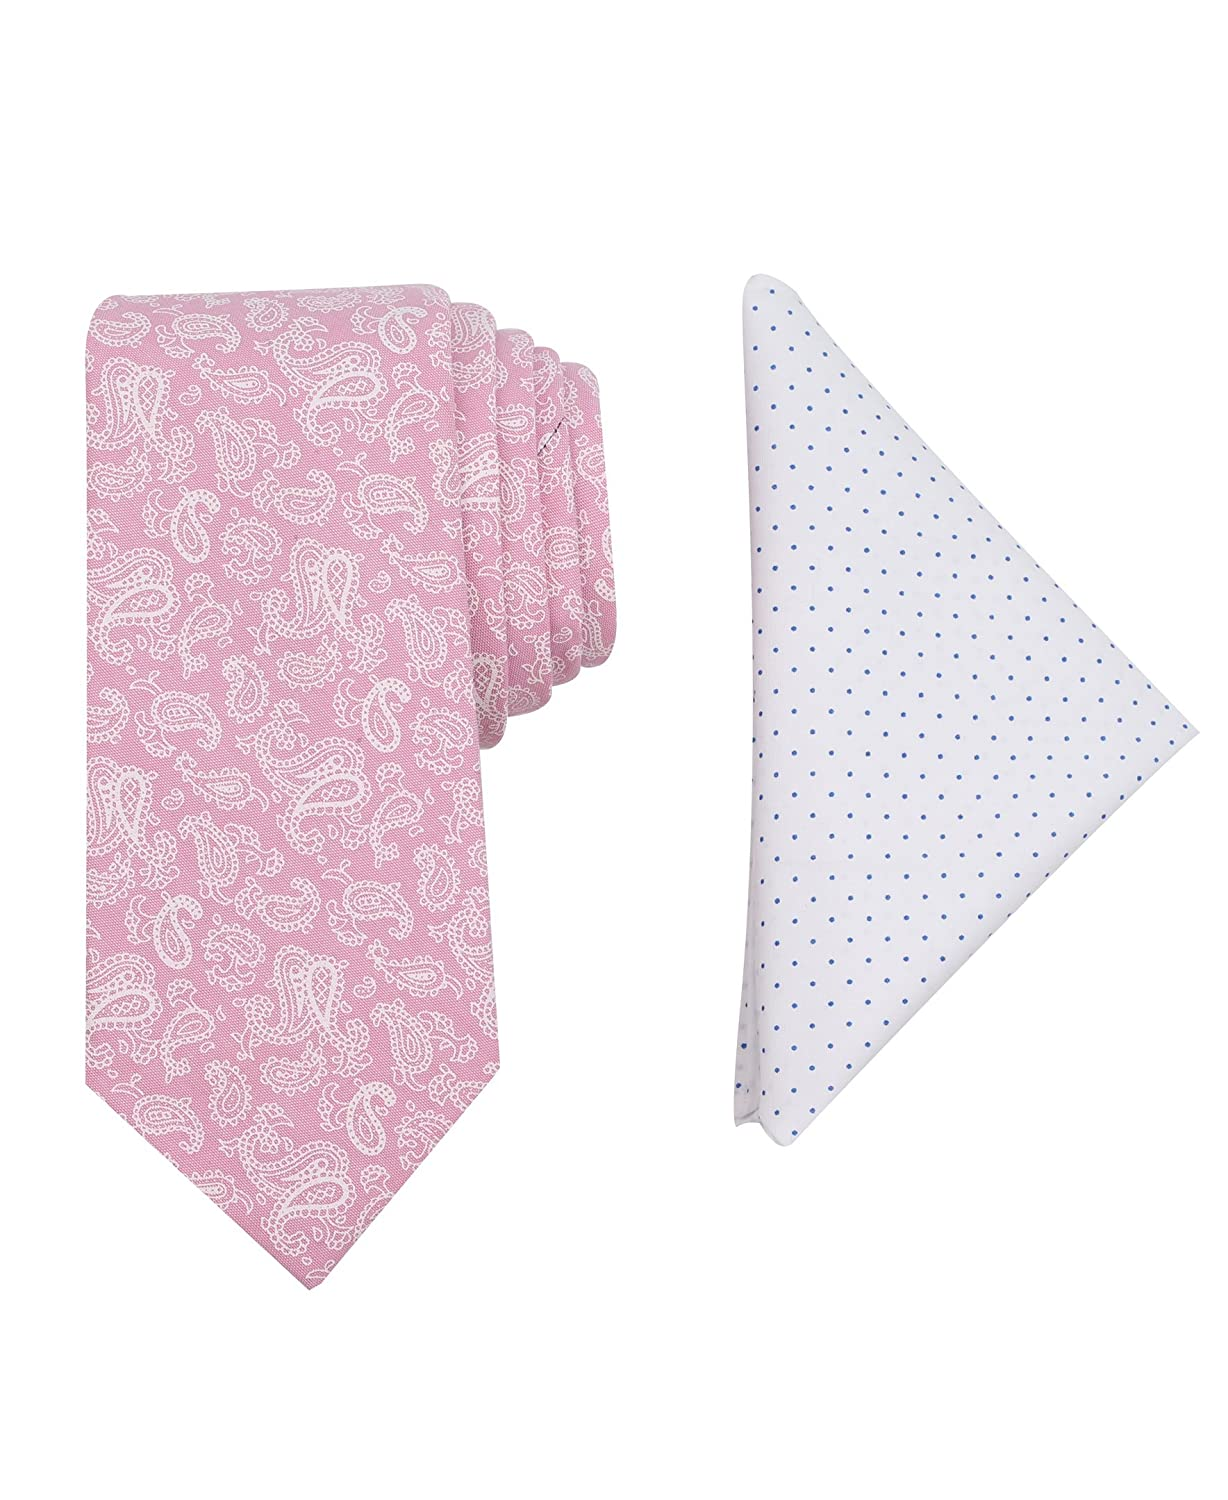 Tallia Men's Slim Tie and Pocket Square Set, Pink, One Size 2TC7-2010